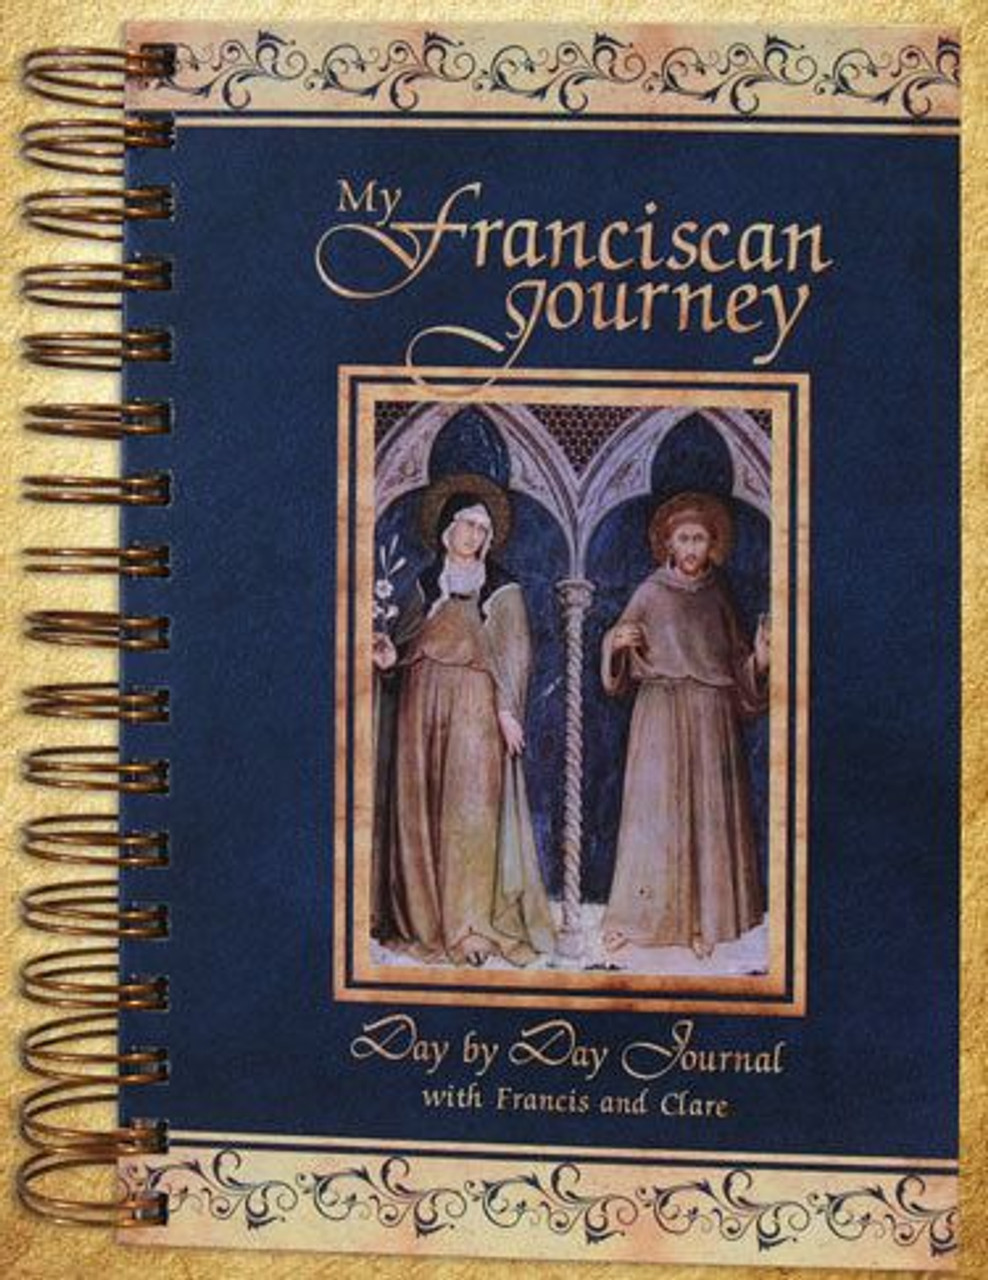 My Franciscan Journey, Day by Day Journal with Francis and Clare of Assisi